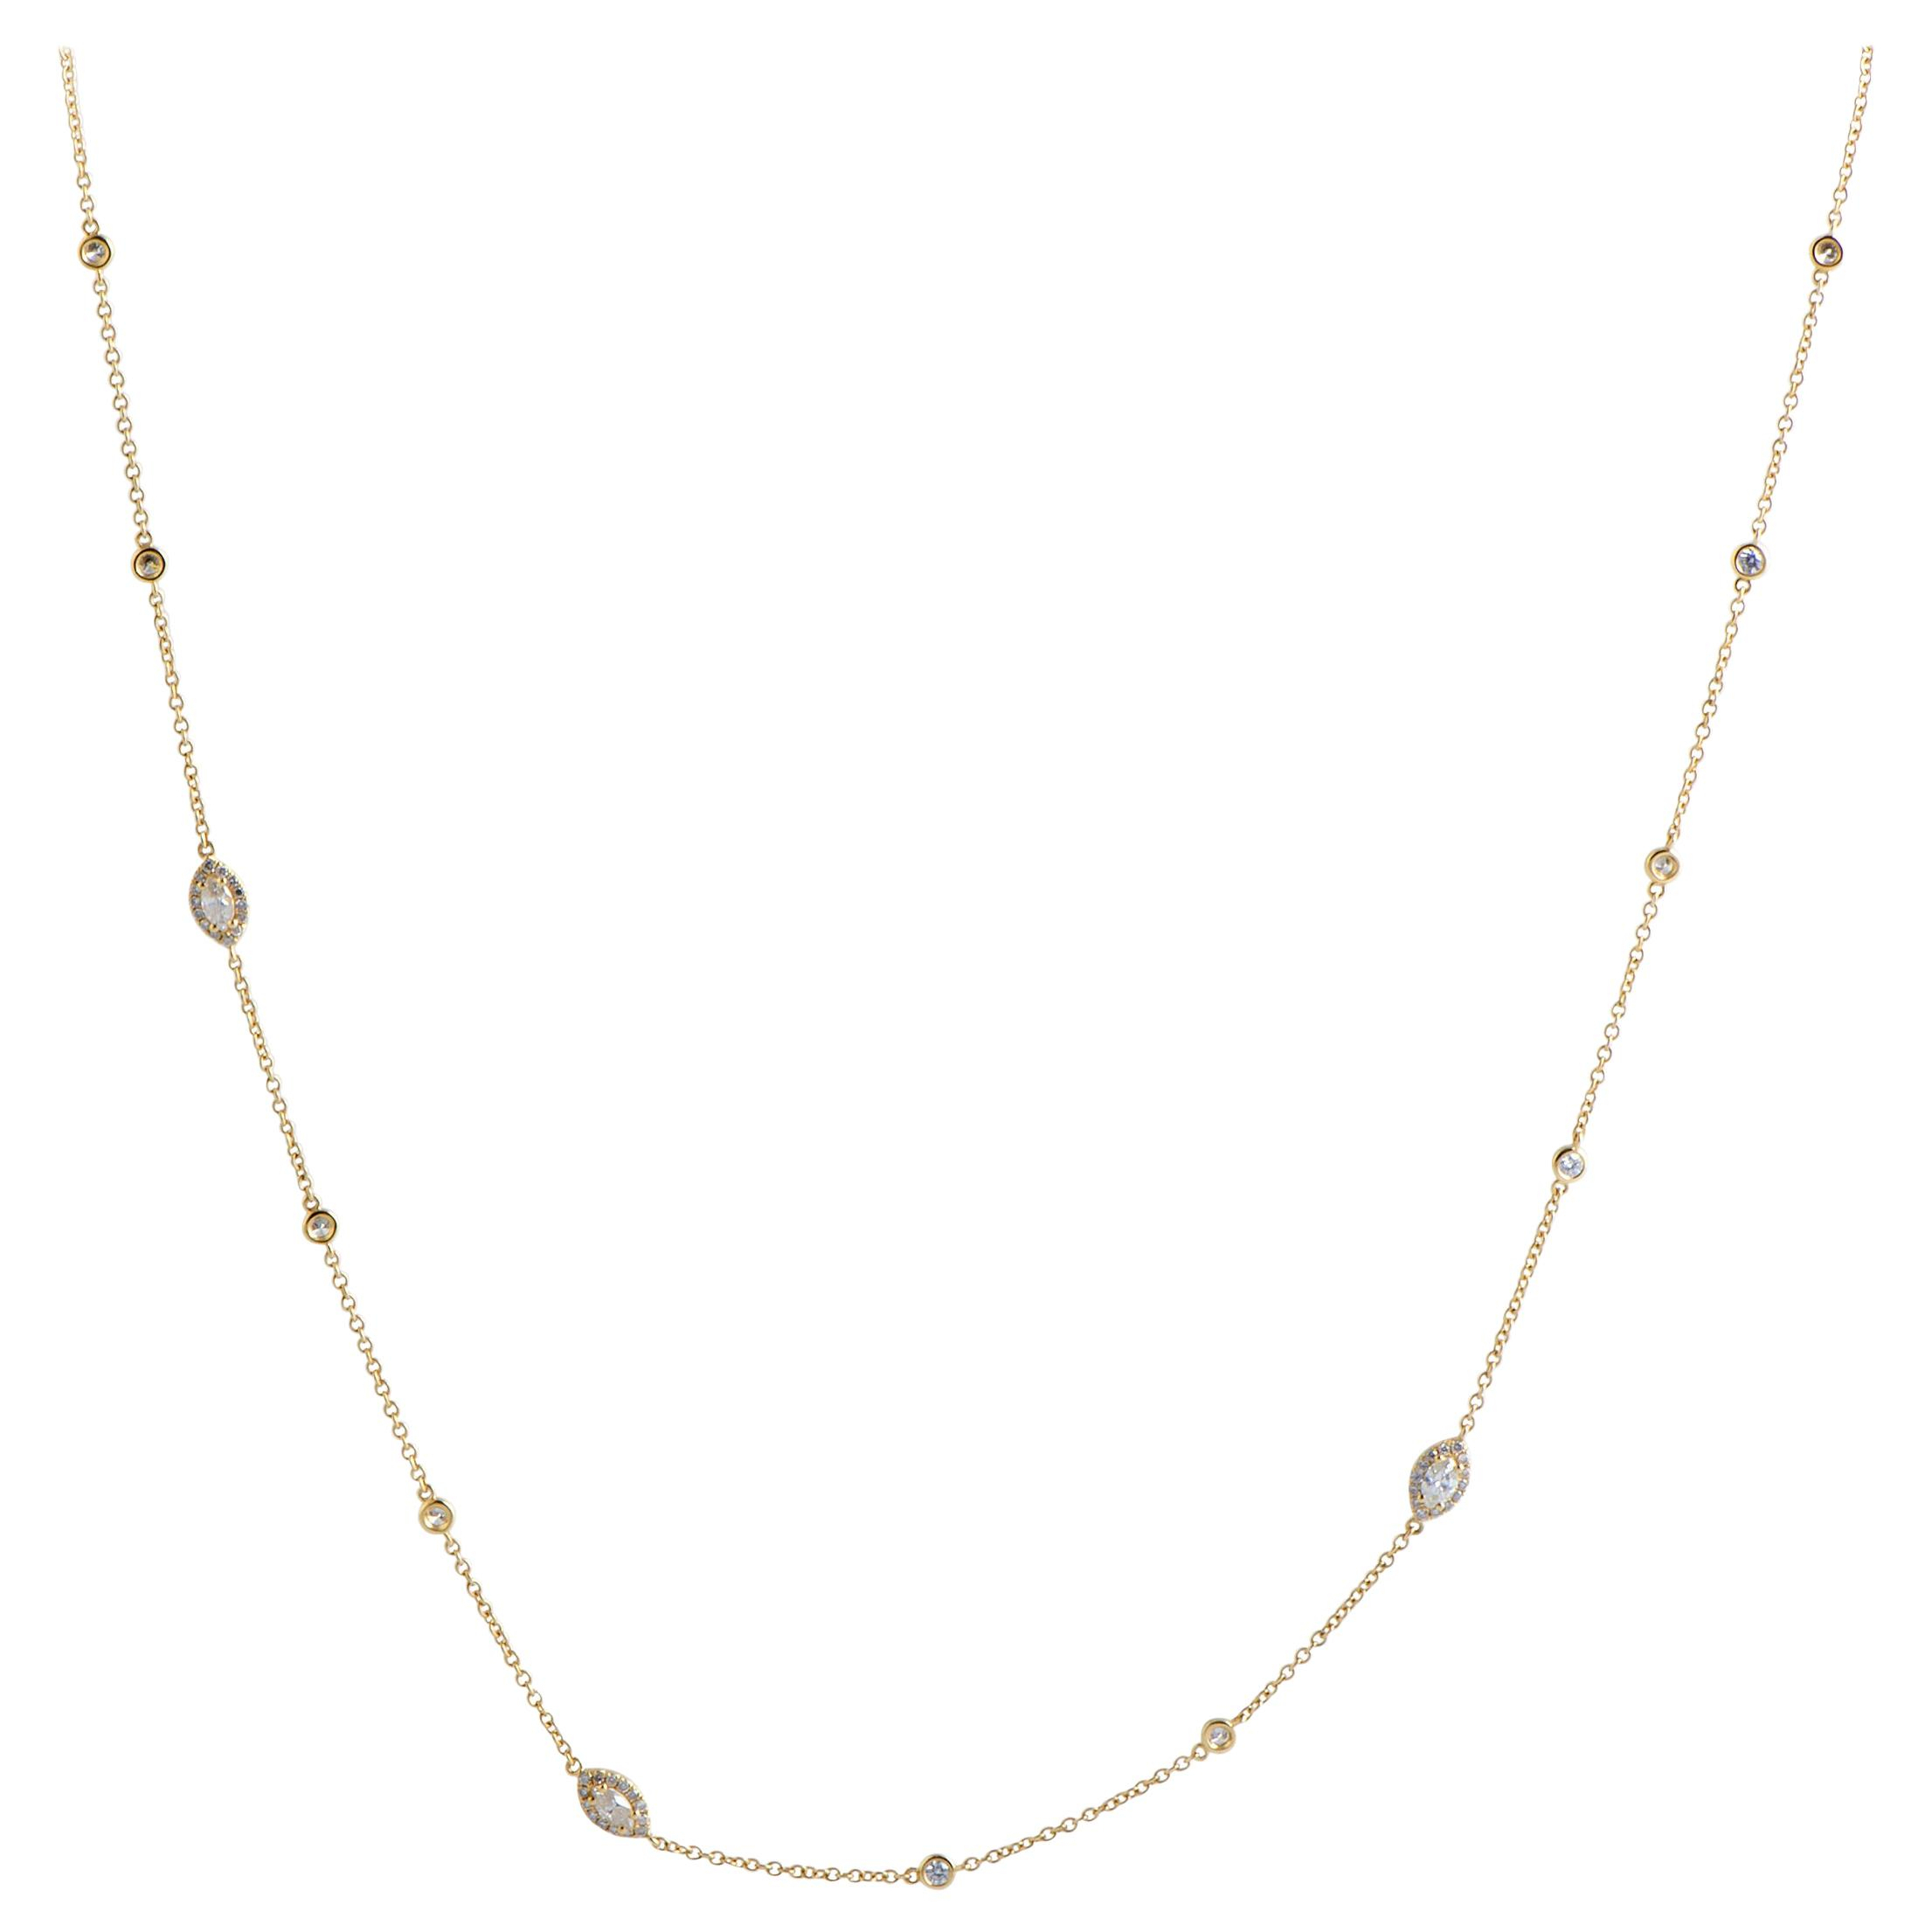 Lb Exclusive 18 Karat Gold Round And Marquise Diamonds Long Sautoir Necklace Intended For Latest Diamond Sautoir Necklaces In Yellow Gold (View 11 of 25)